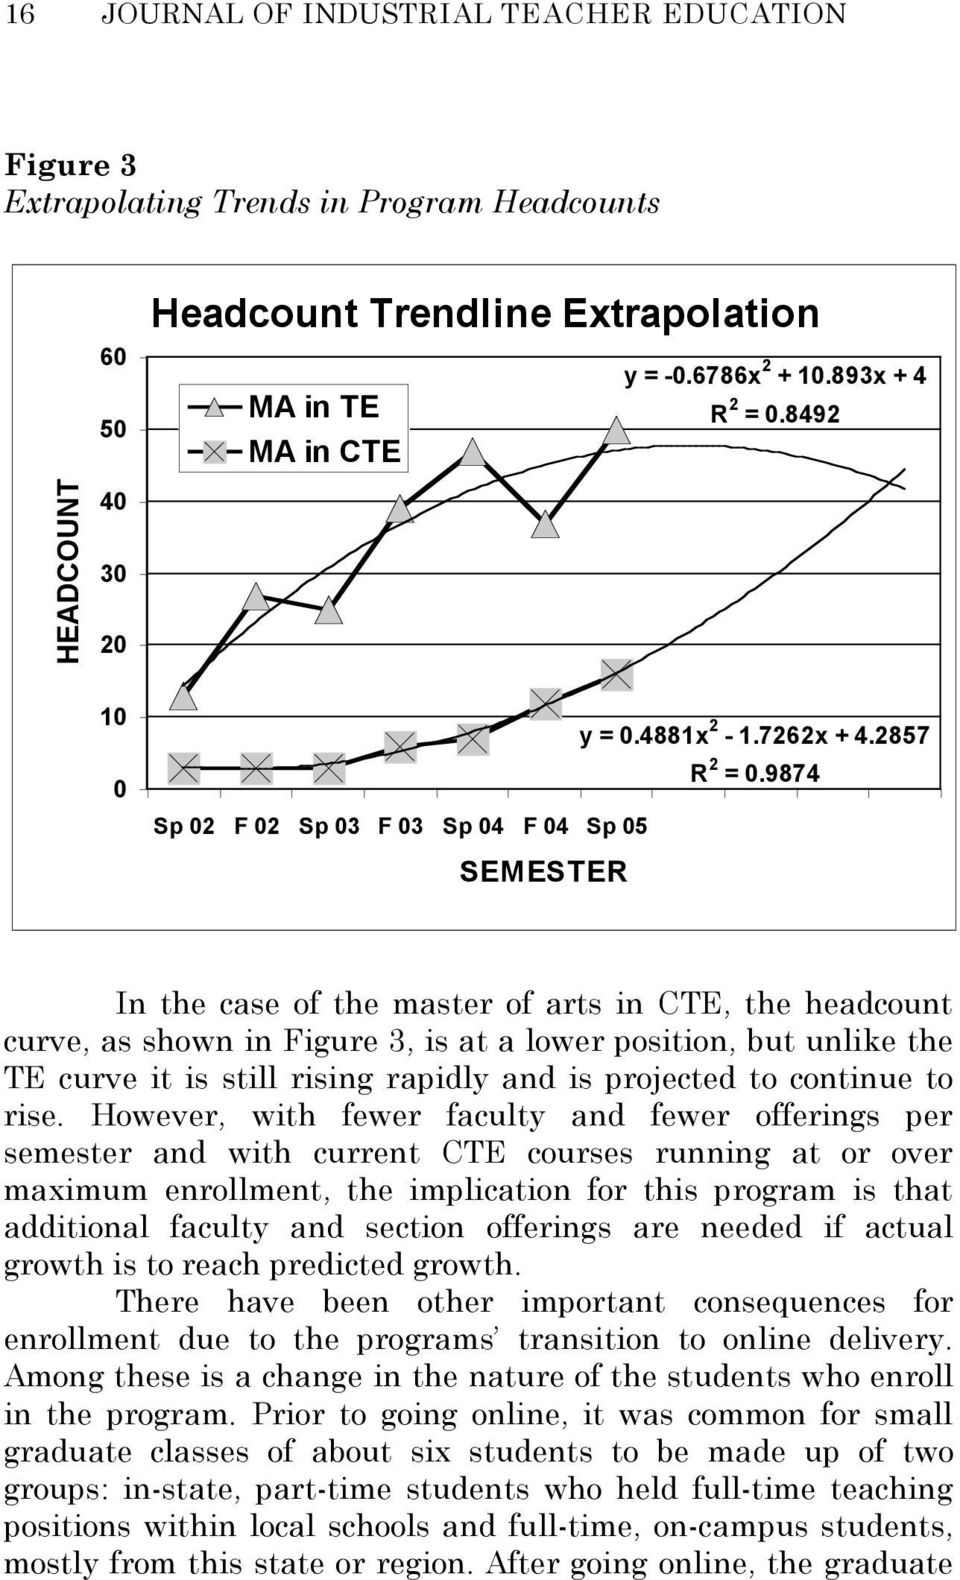 9874 Sp 02 F 02 Sp 03 F 03 Sp 04 F 04 Sp 05 SEMESTER In the case of the master of arts in CTE, the headcount curve, as shown in Figure 3, is at a lower position, but unlike the TE curve it is still